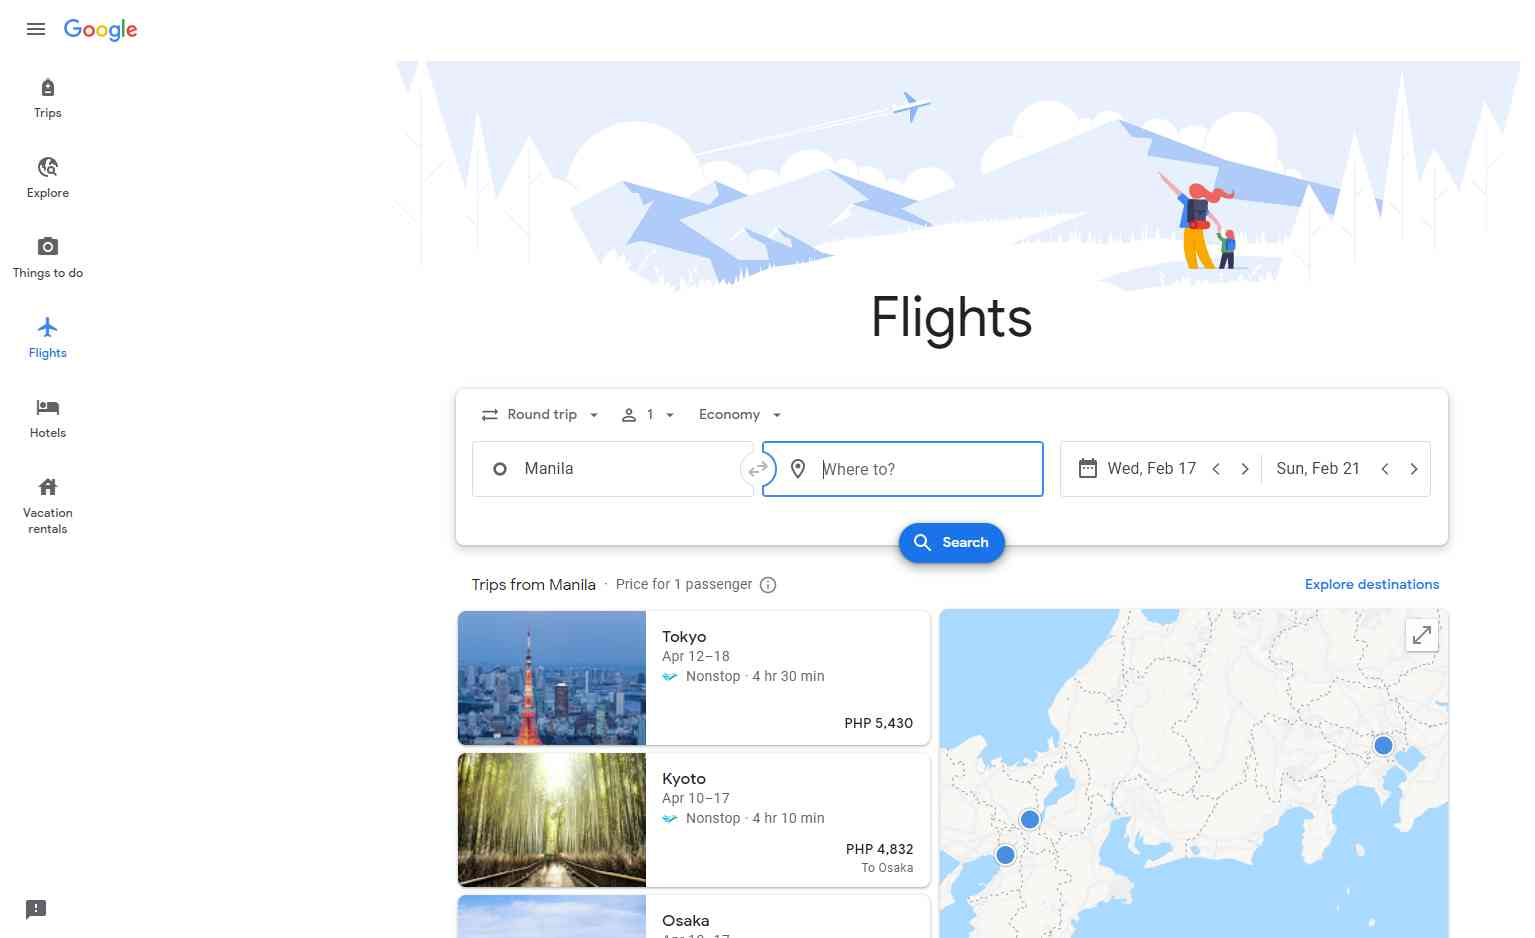 google flights Top Flight Booking Websites in Singapore